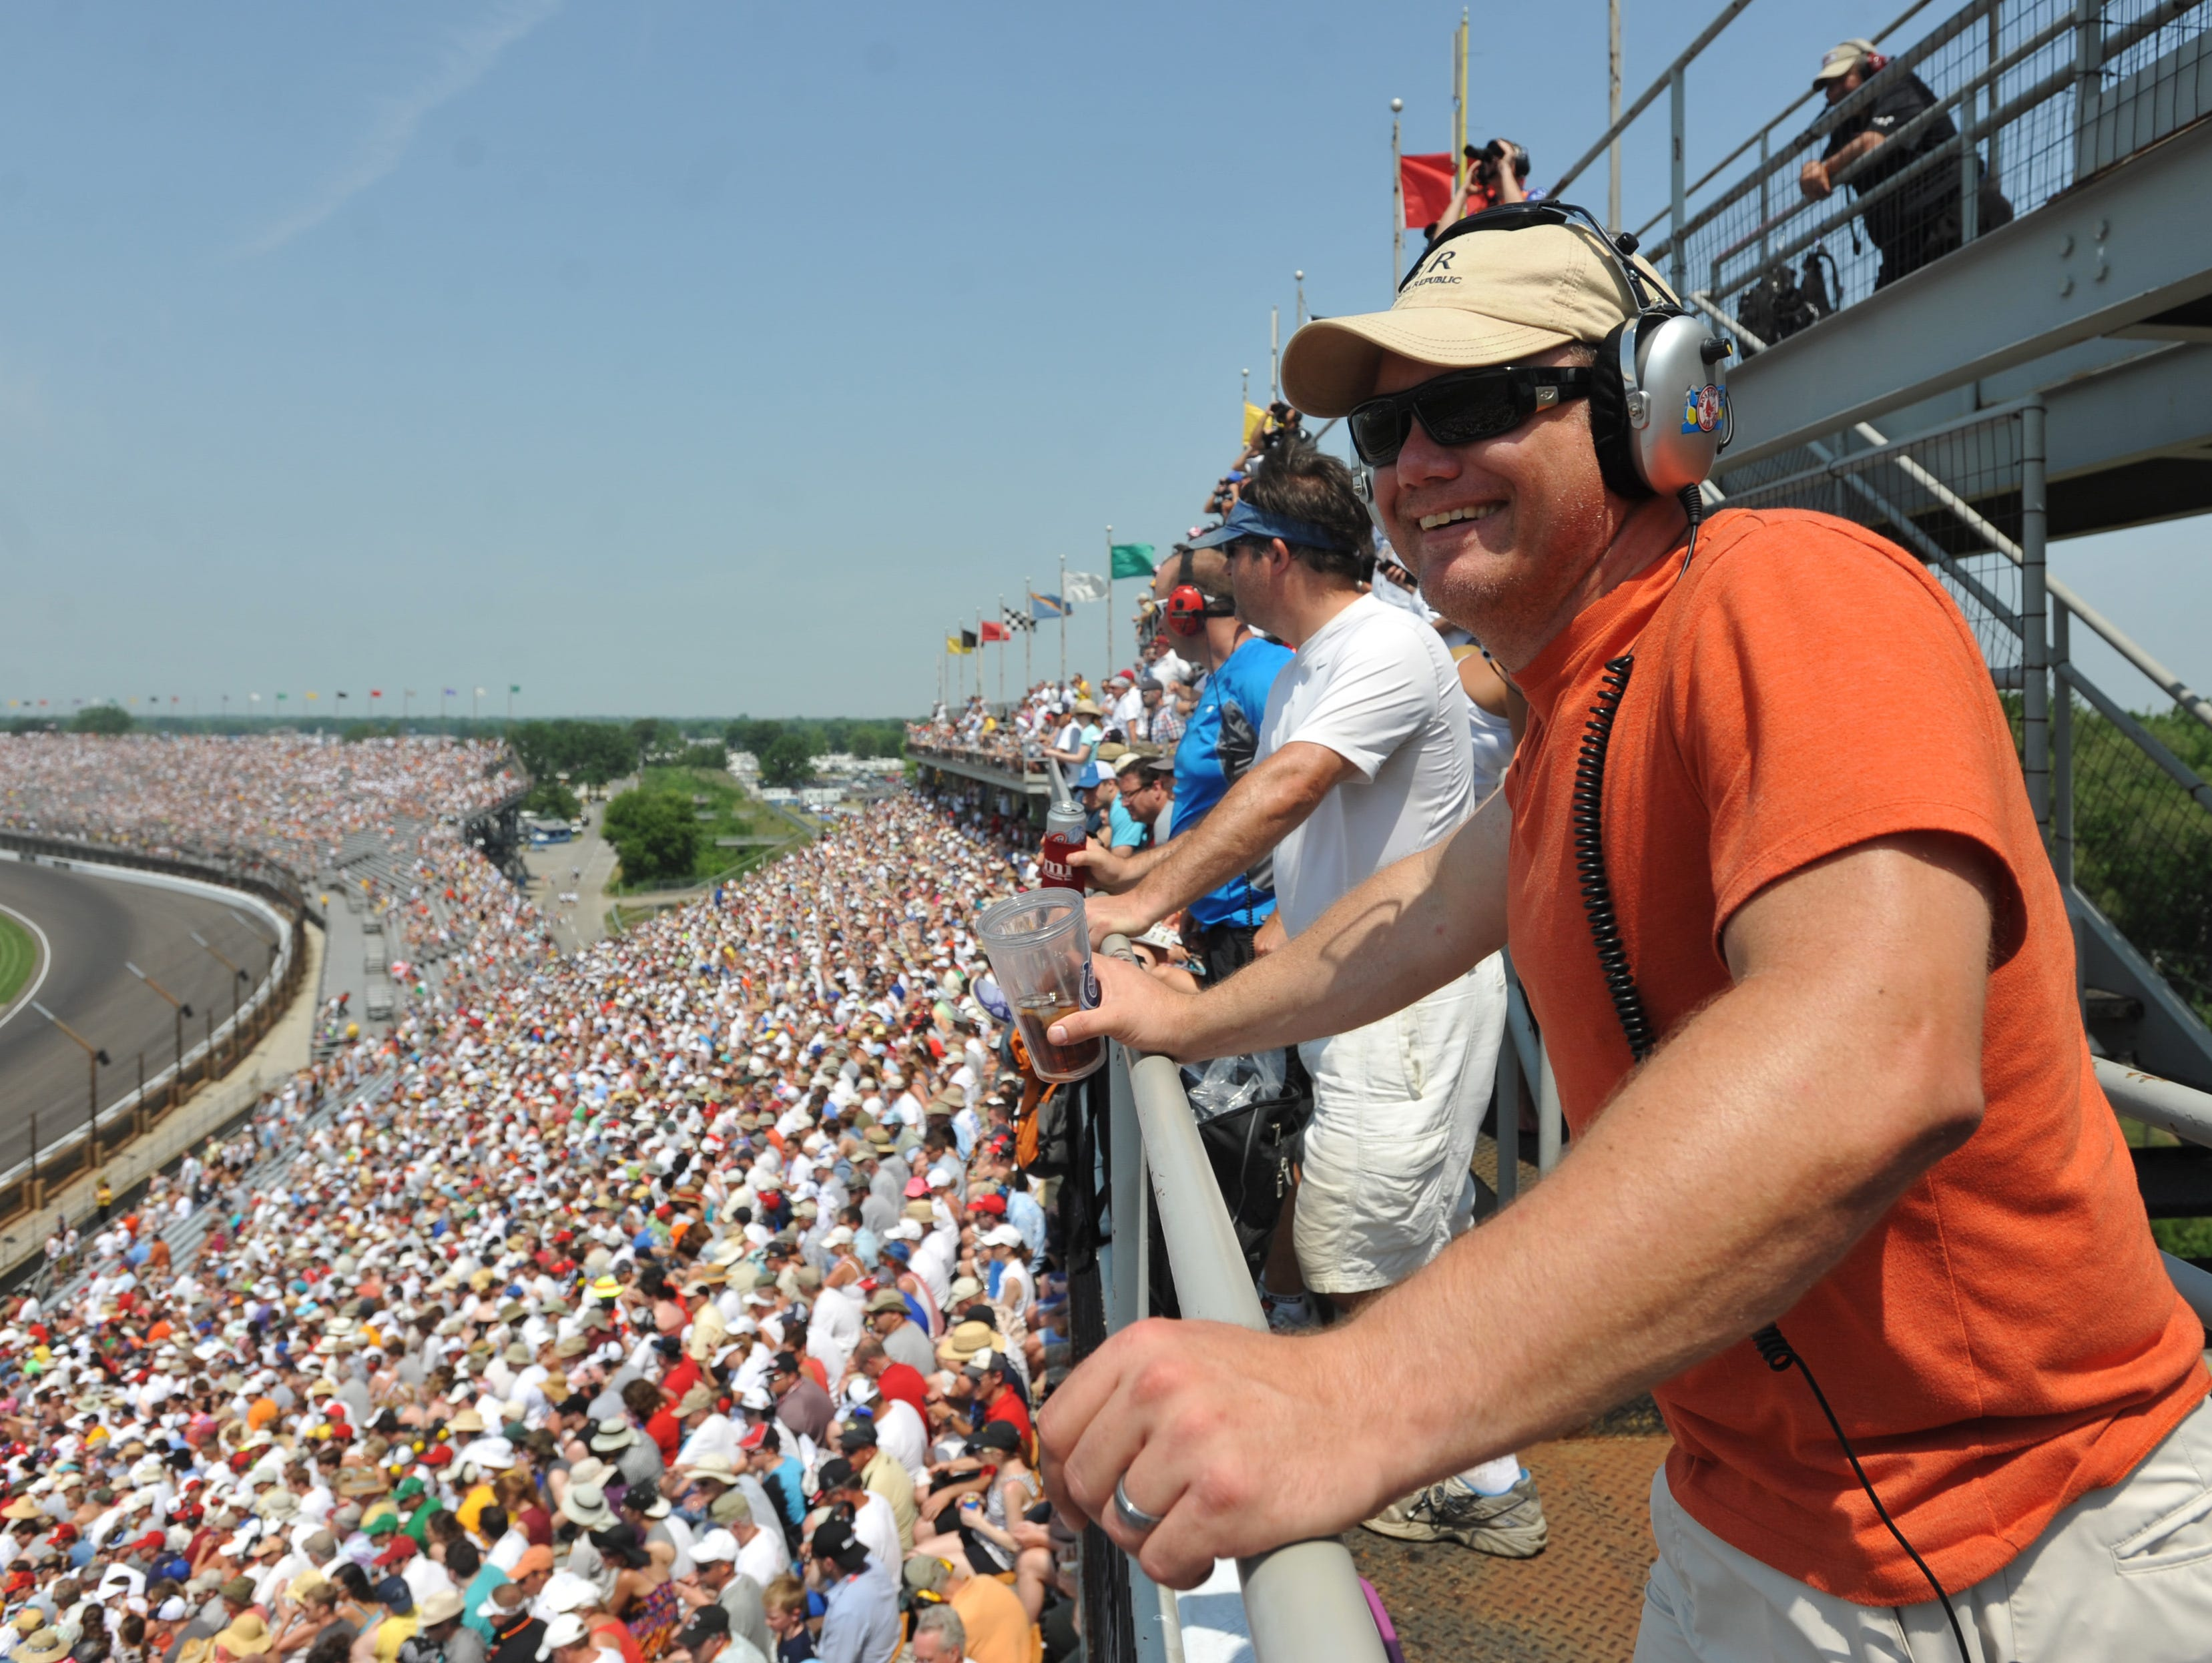 A fan enjoys the view from high up in Turn 3 during the 2012 Indianapolis 500.